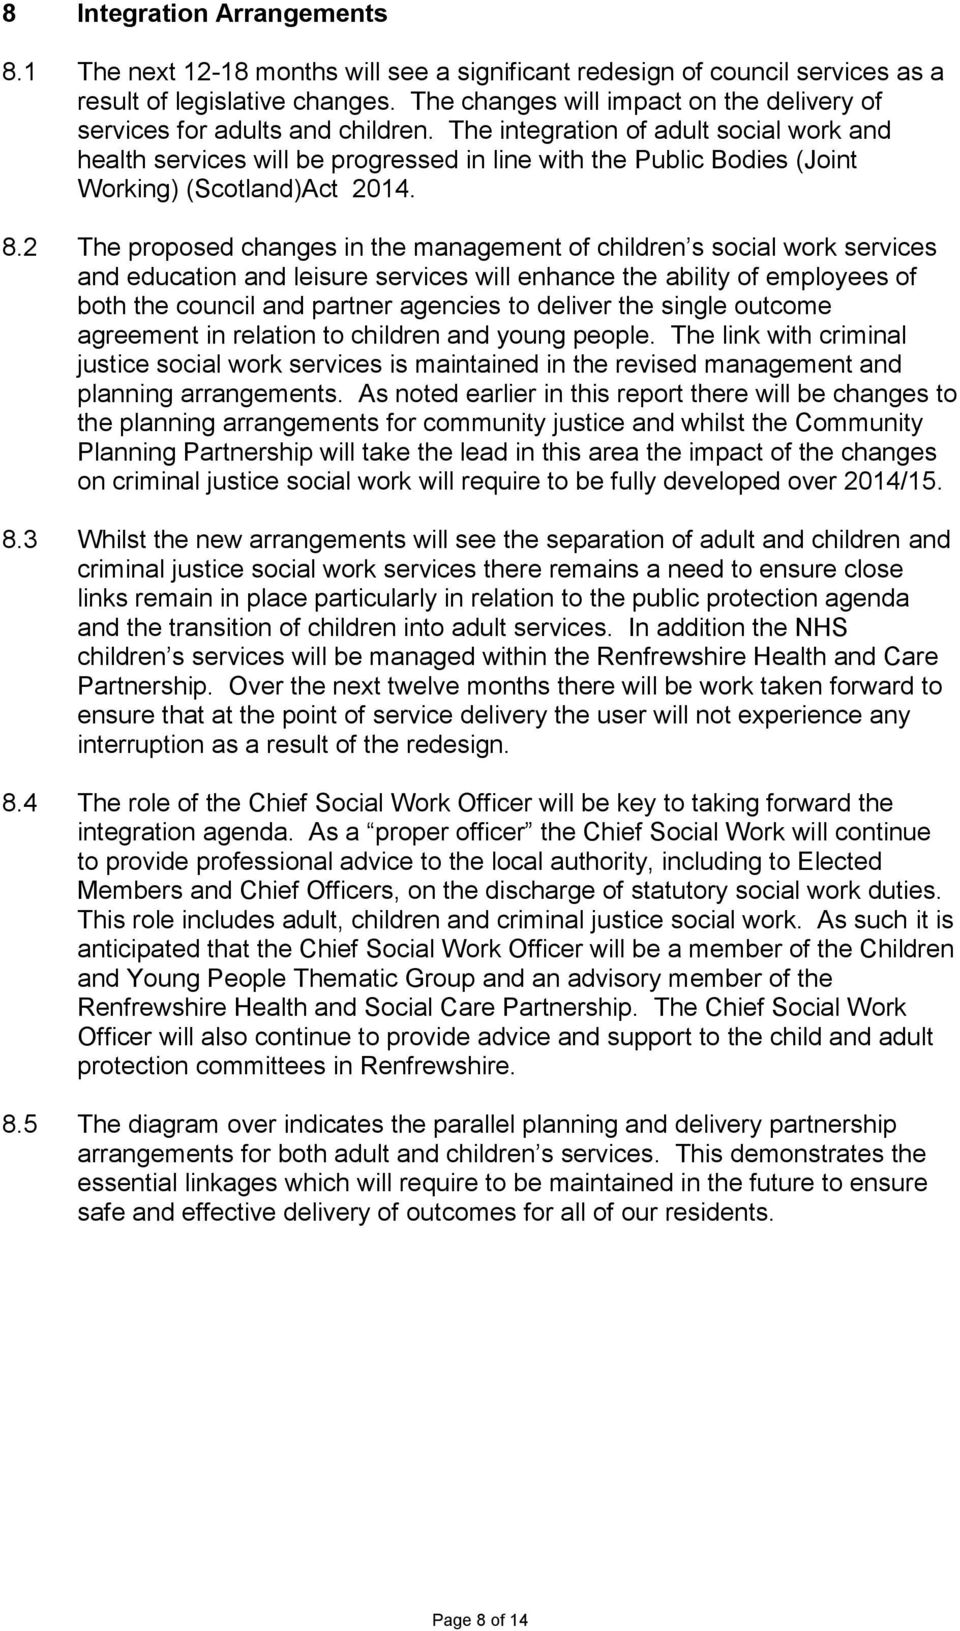 The integration of adult social work and health services will be progressed in line with the Public Bodies (Joint Working) (Scotland)Act 2014. 8.